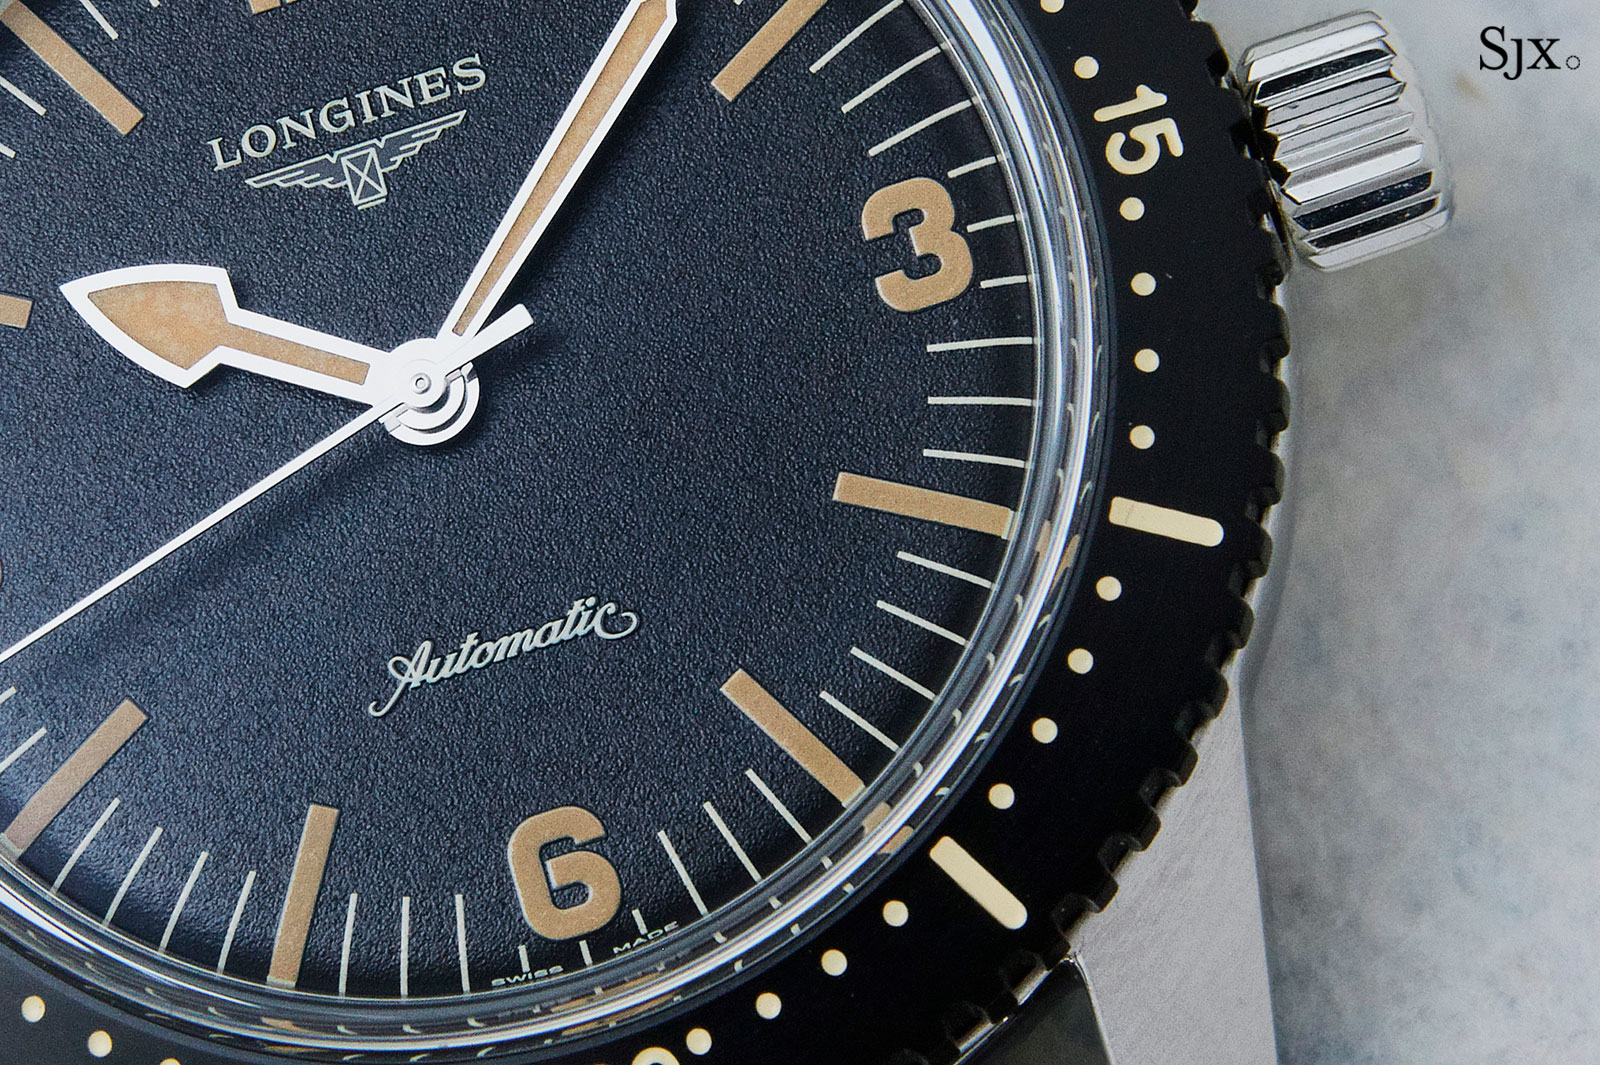 Longines Skin Diver watch 3